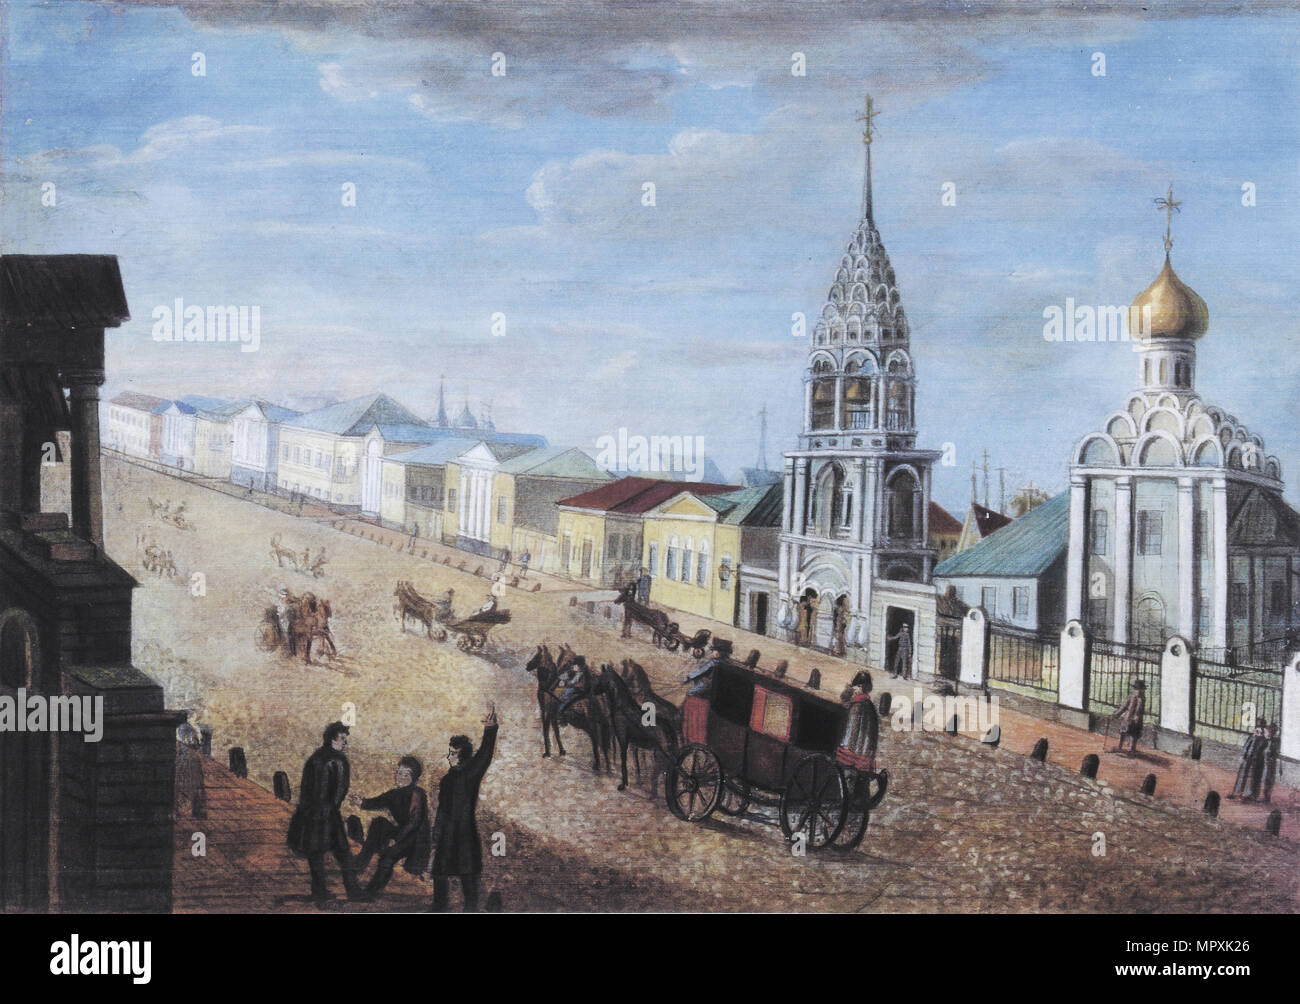 View of the Arbat Street in Moscow, 1830s. - Stock Image